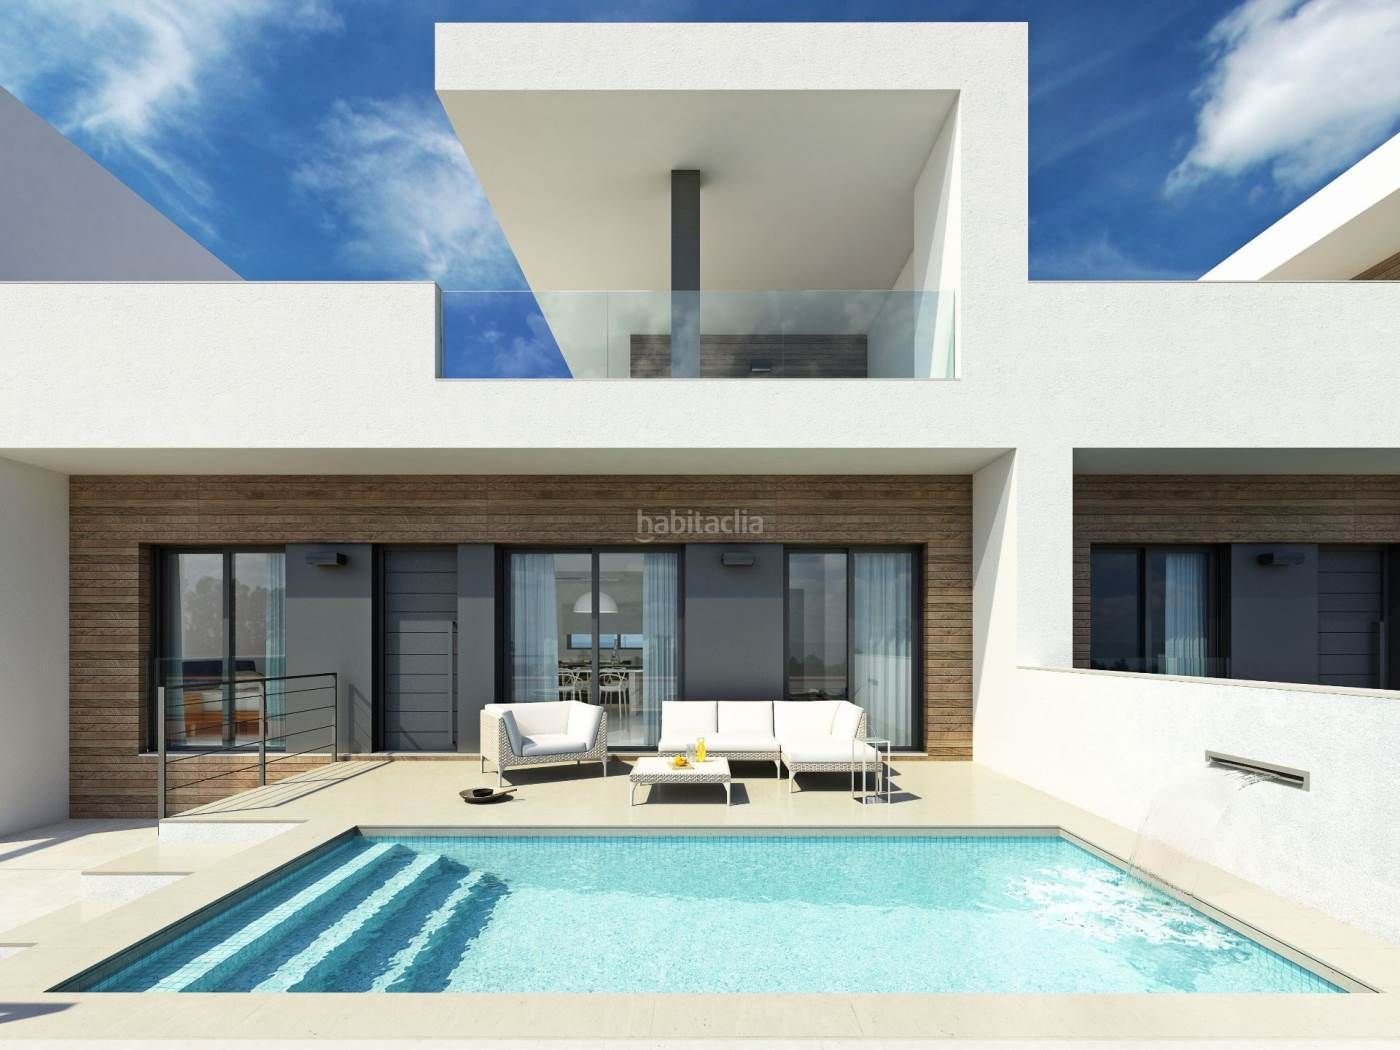 Semi detached house in Formentera del Segura. Casa en formentera del segura